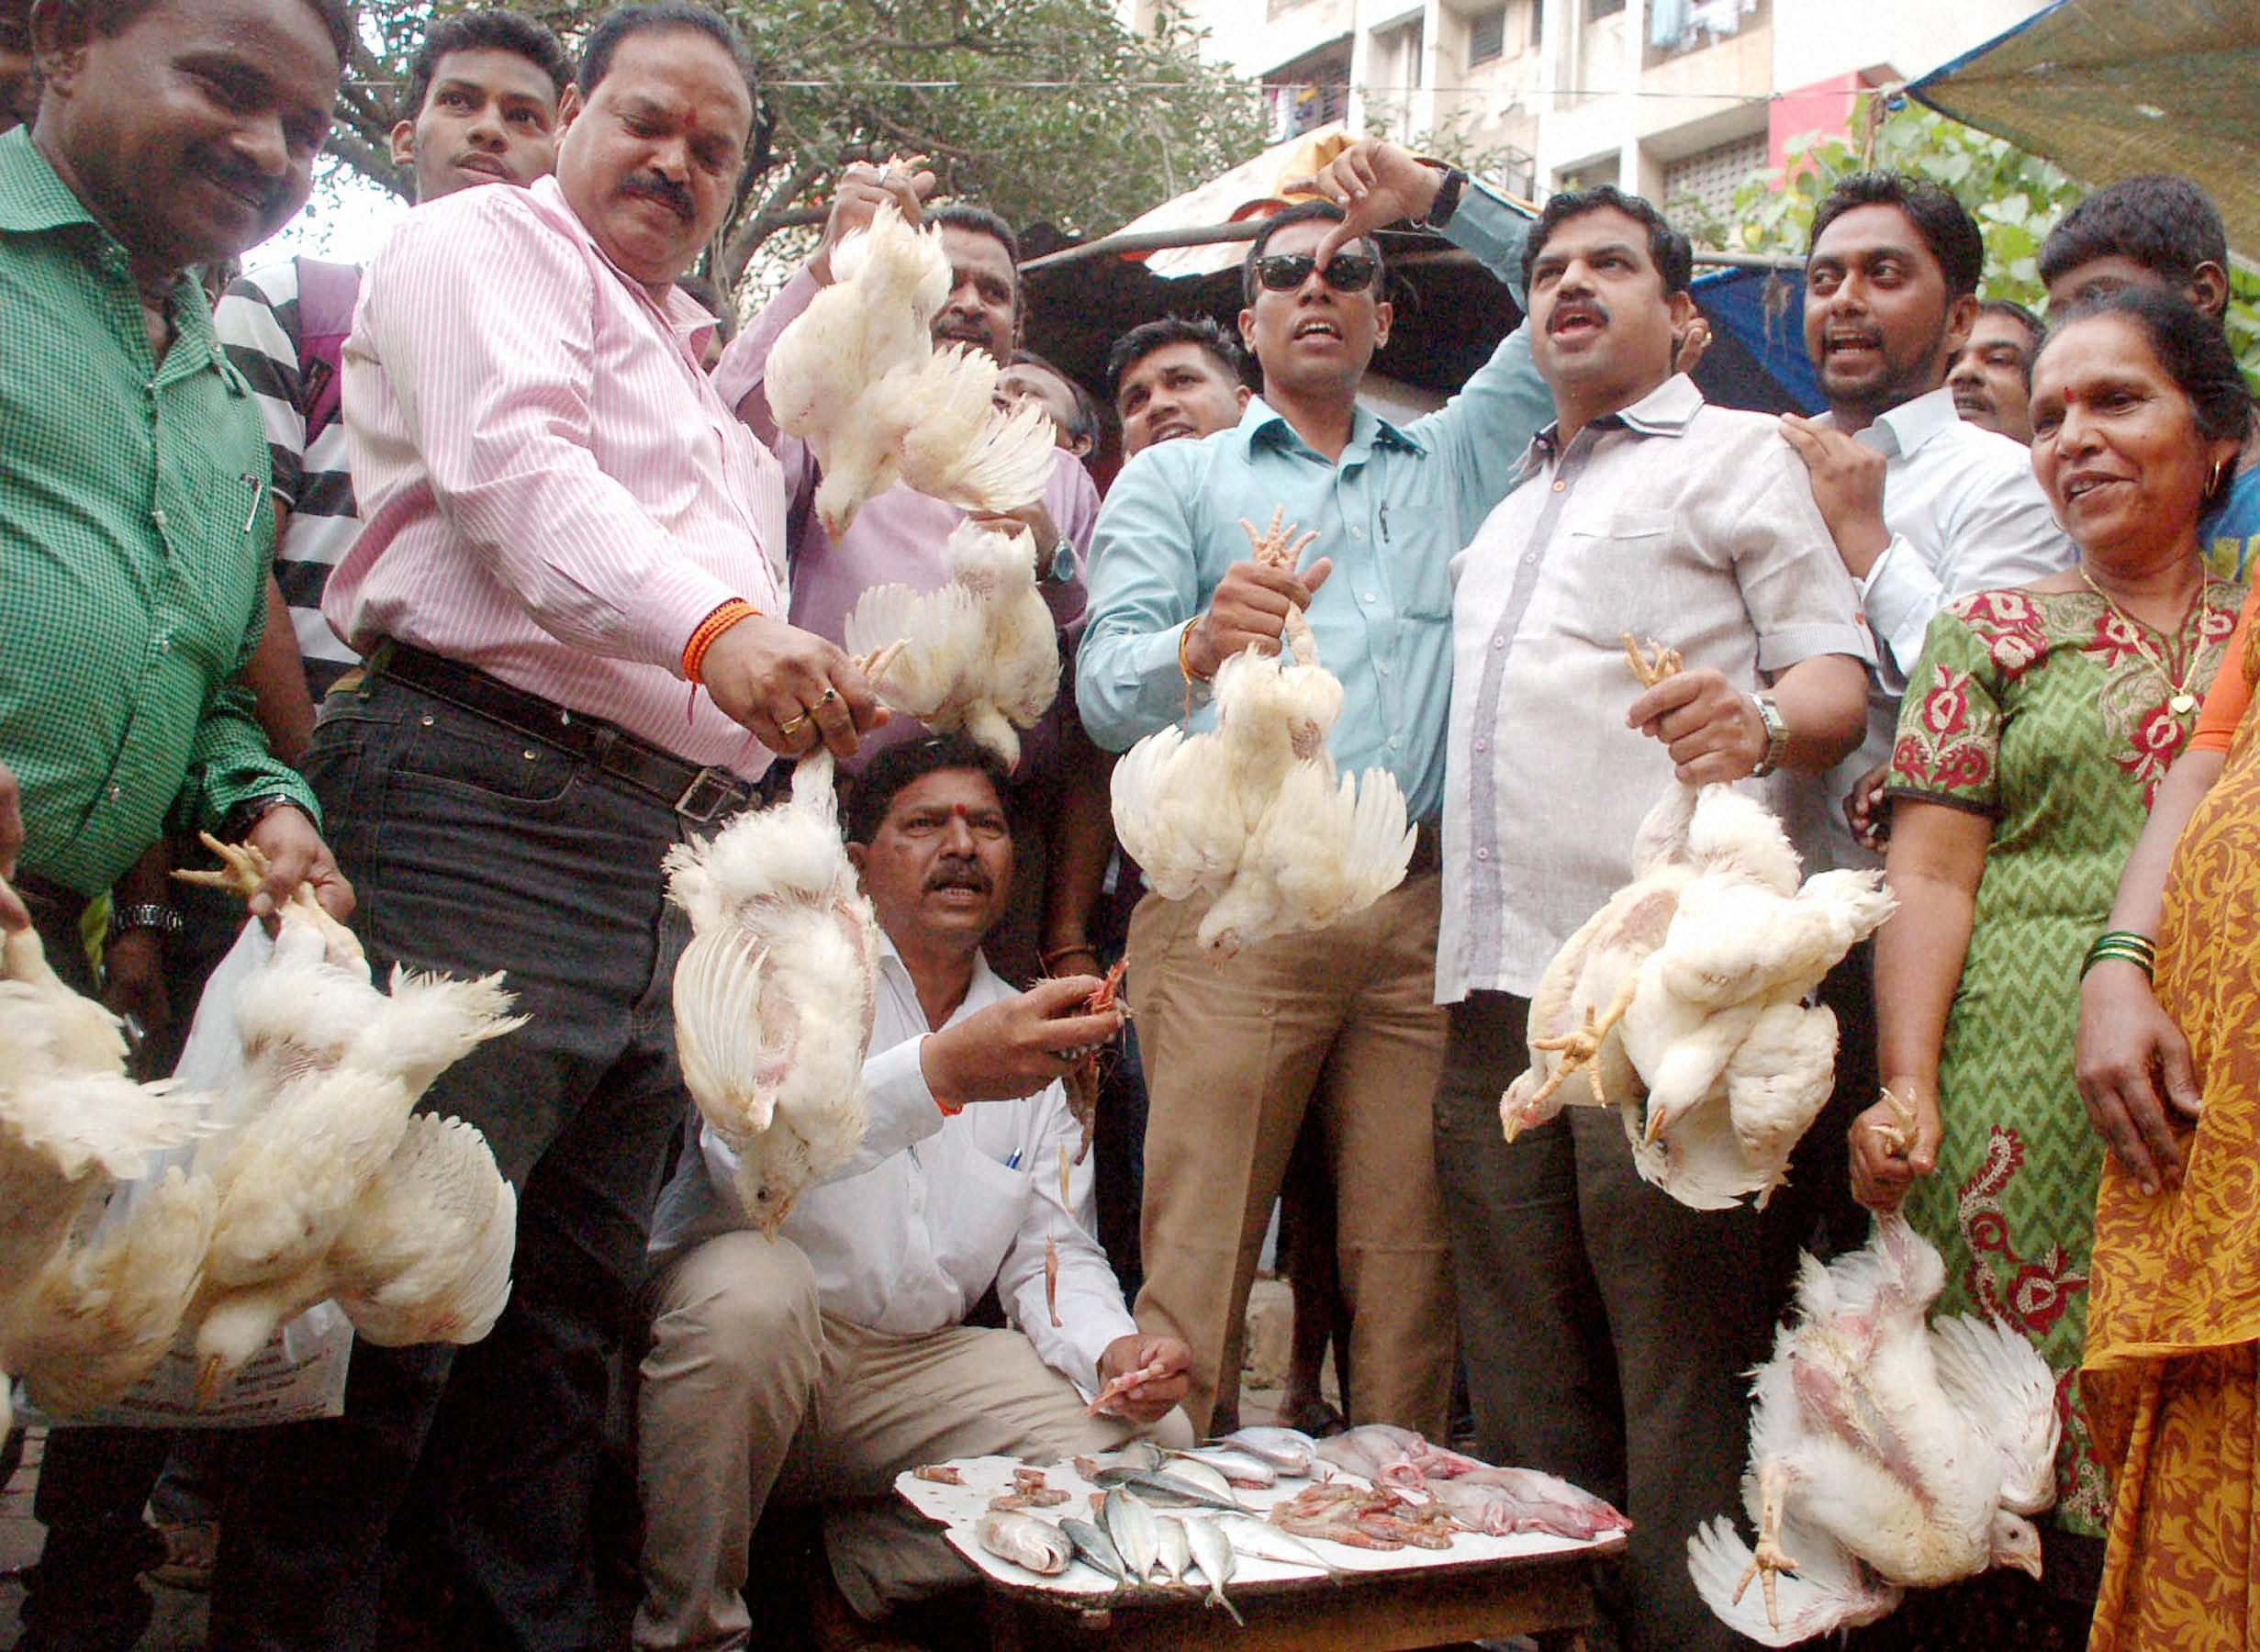 Shiv Sena workers hold chickens during a protest against ban on meat in Mumbai last week. Credit: PTI